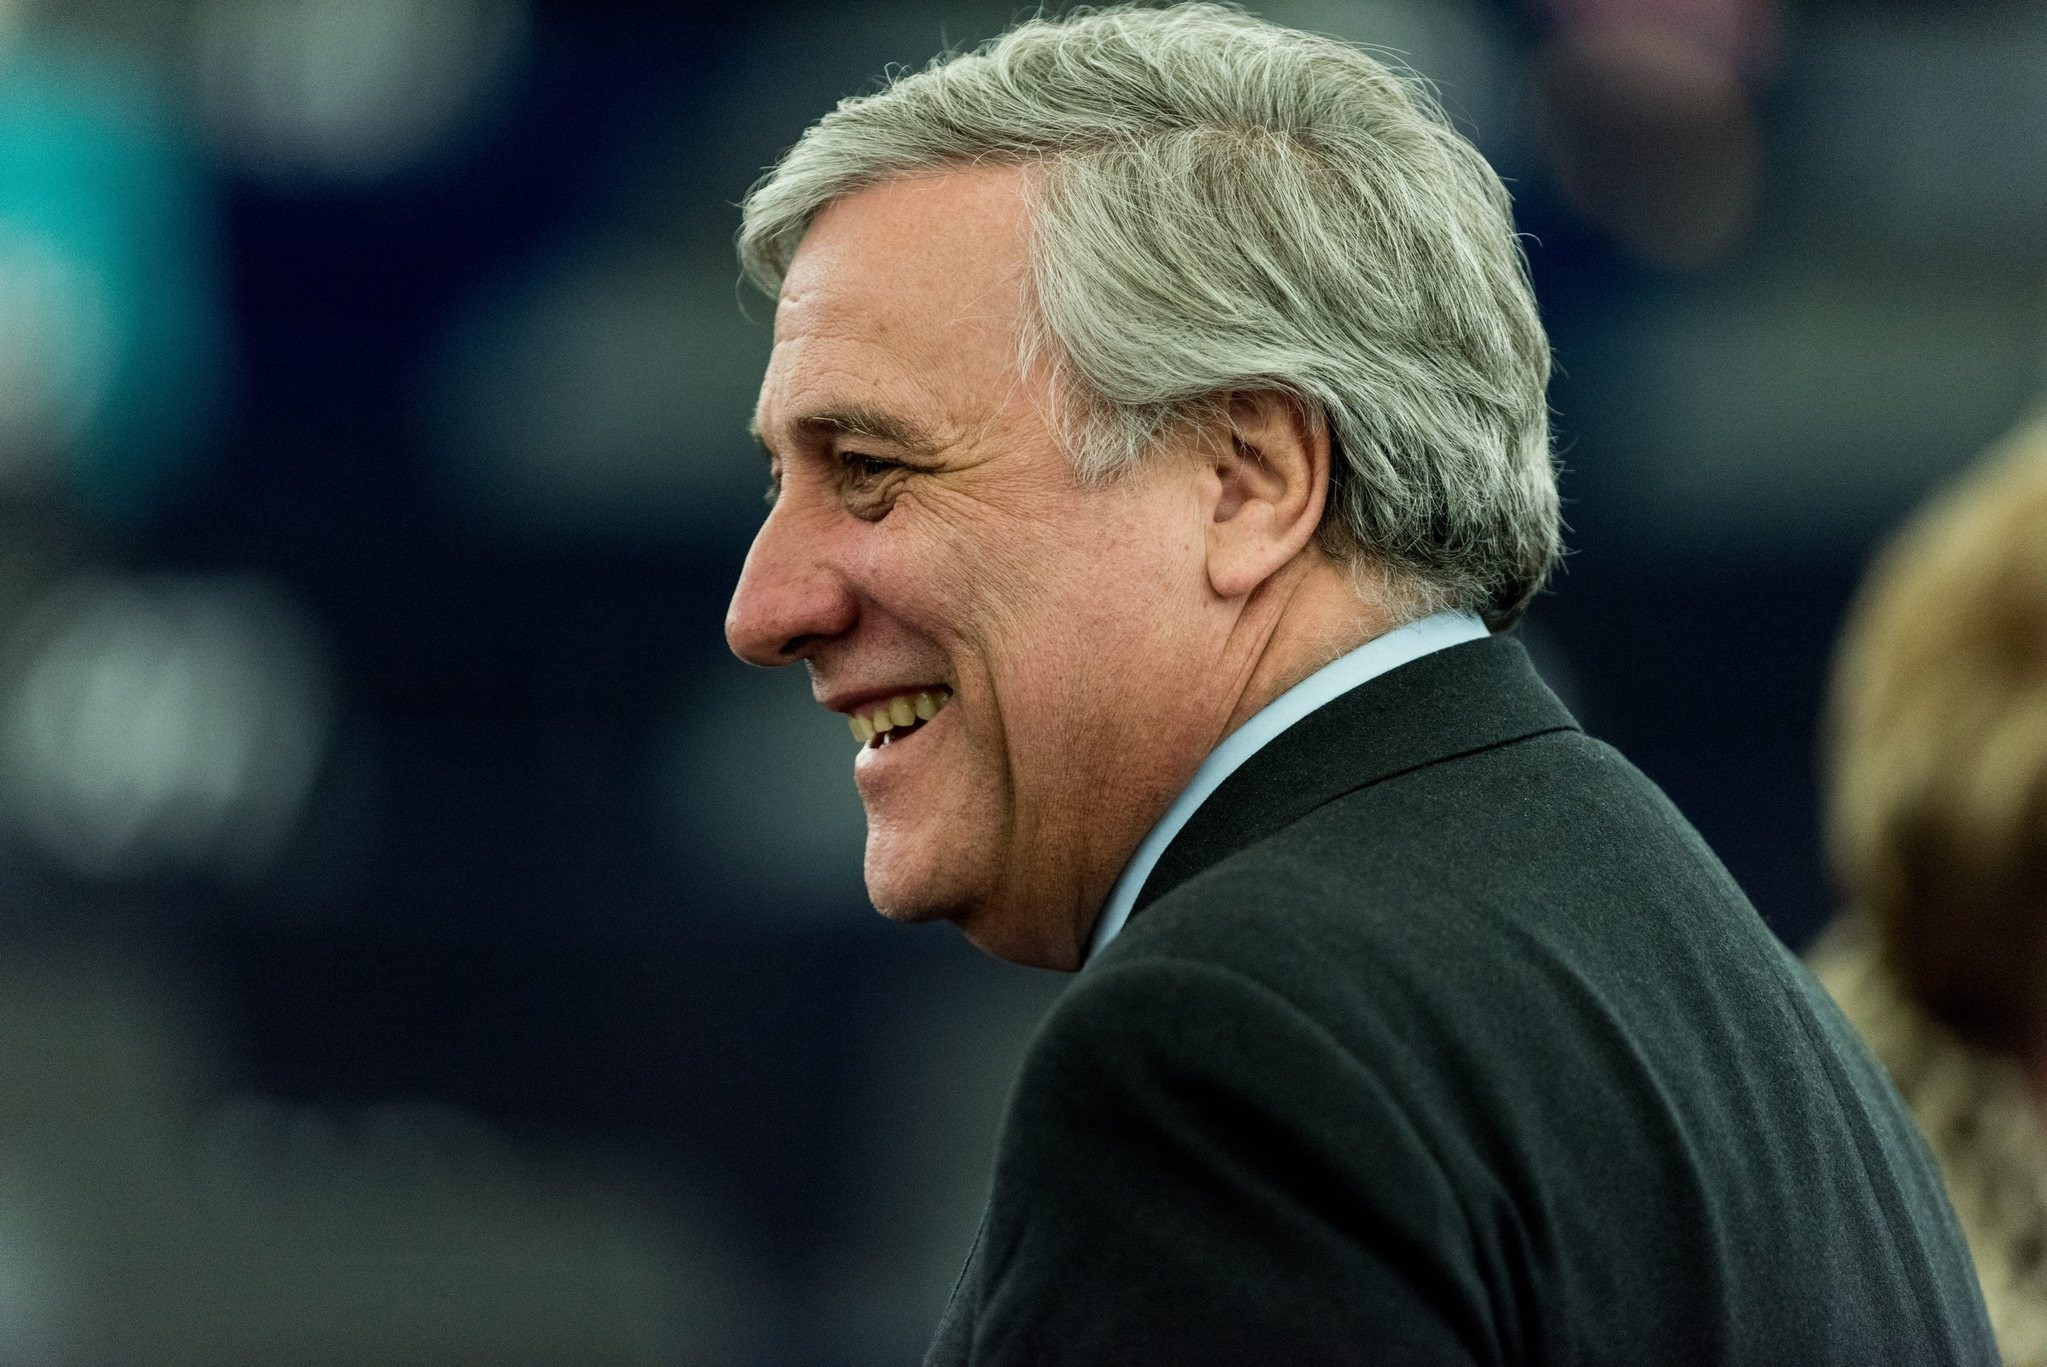 The Italian Antonio Tajani is to stand for the Group of the European People's Party (EPP) for the post of President of the Parliament. (EPA Photo)